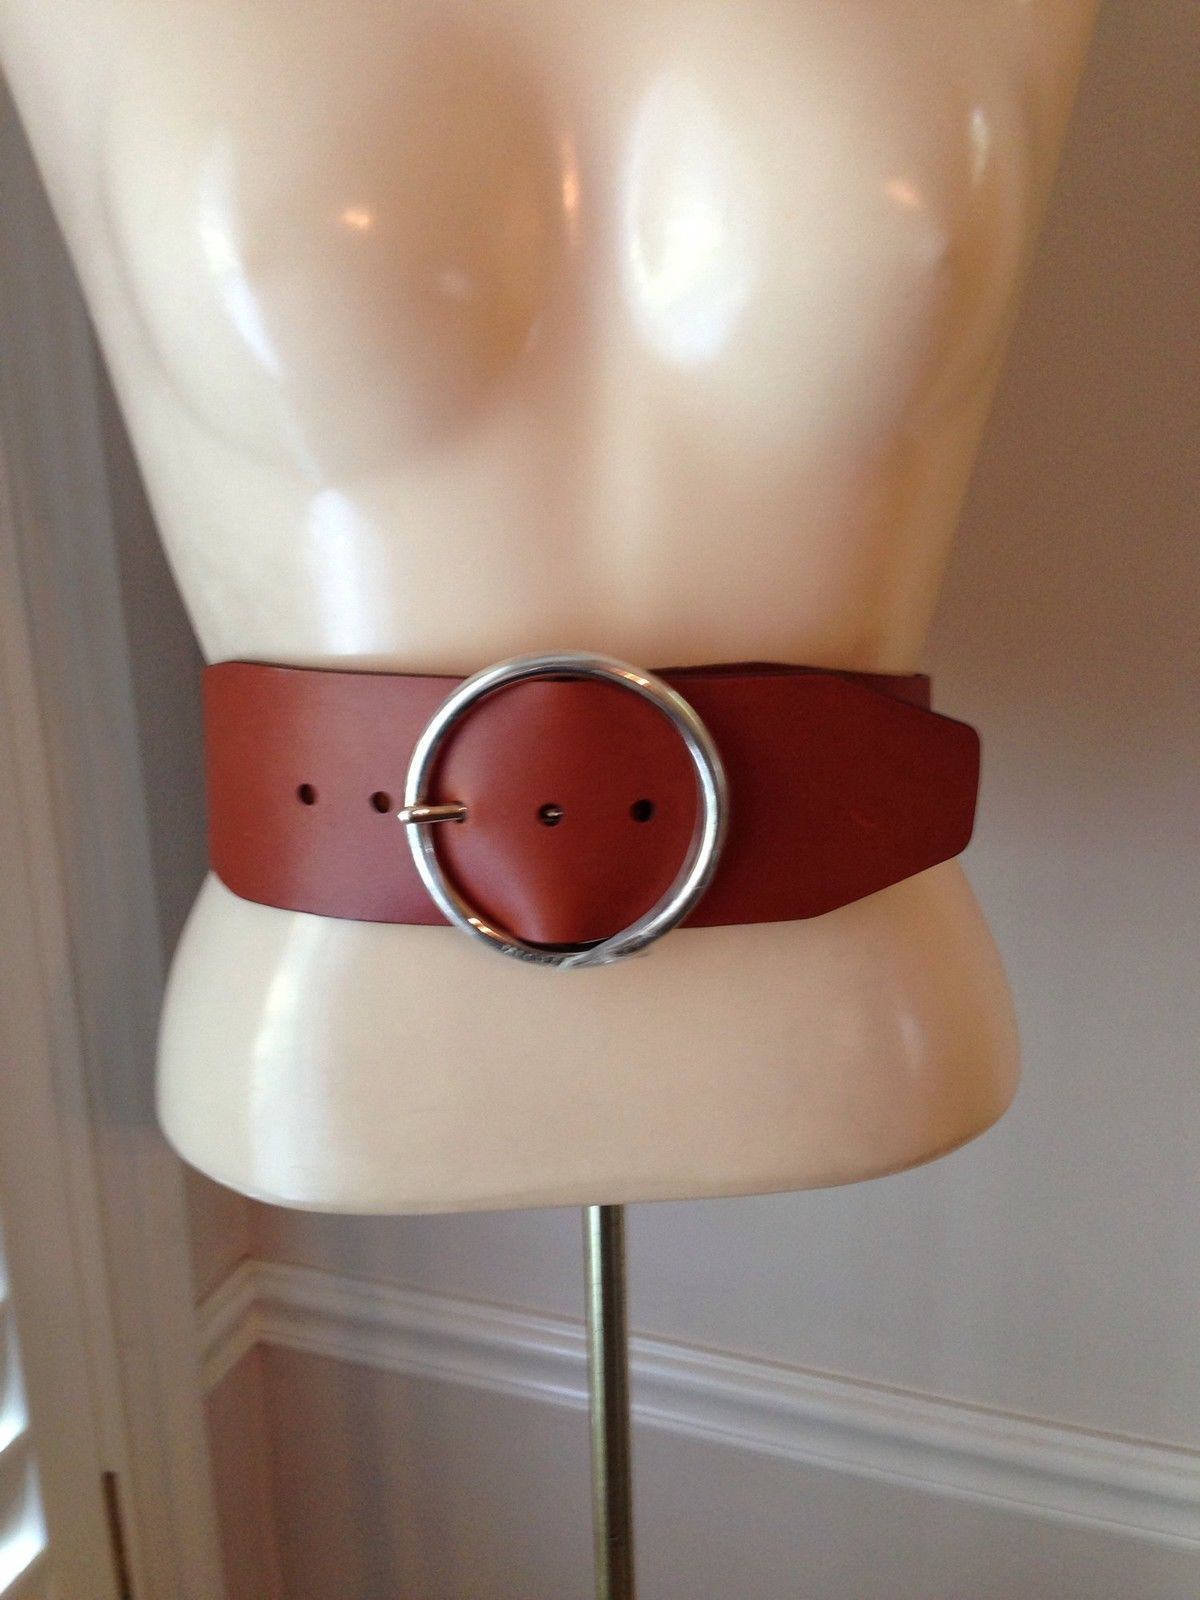 MICHAEL KORS Brown Belt - Size M - NEW WITH TAGS